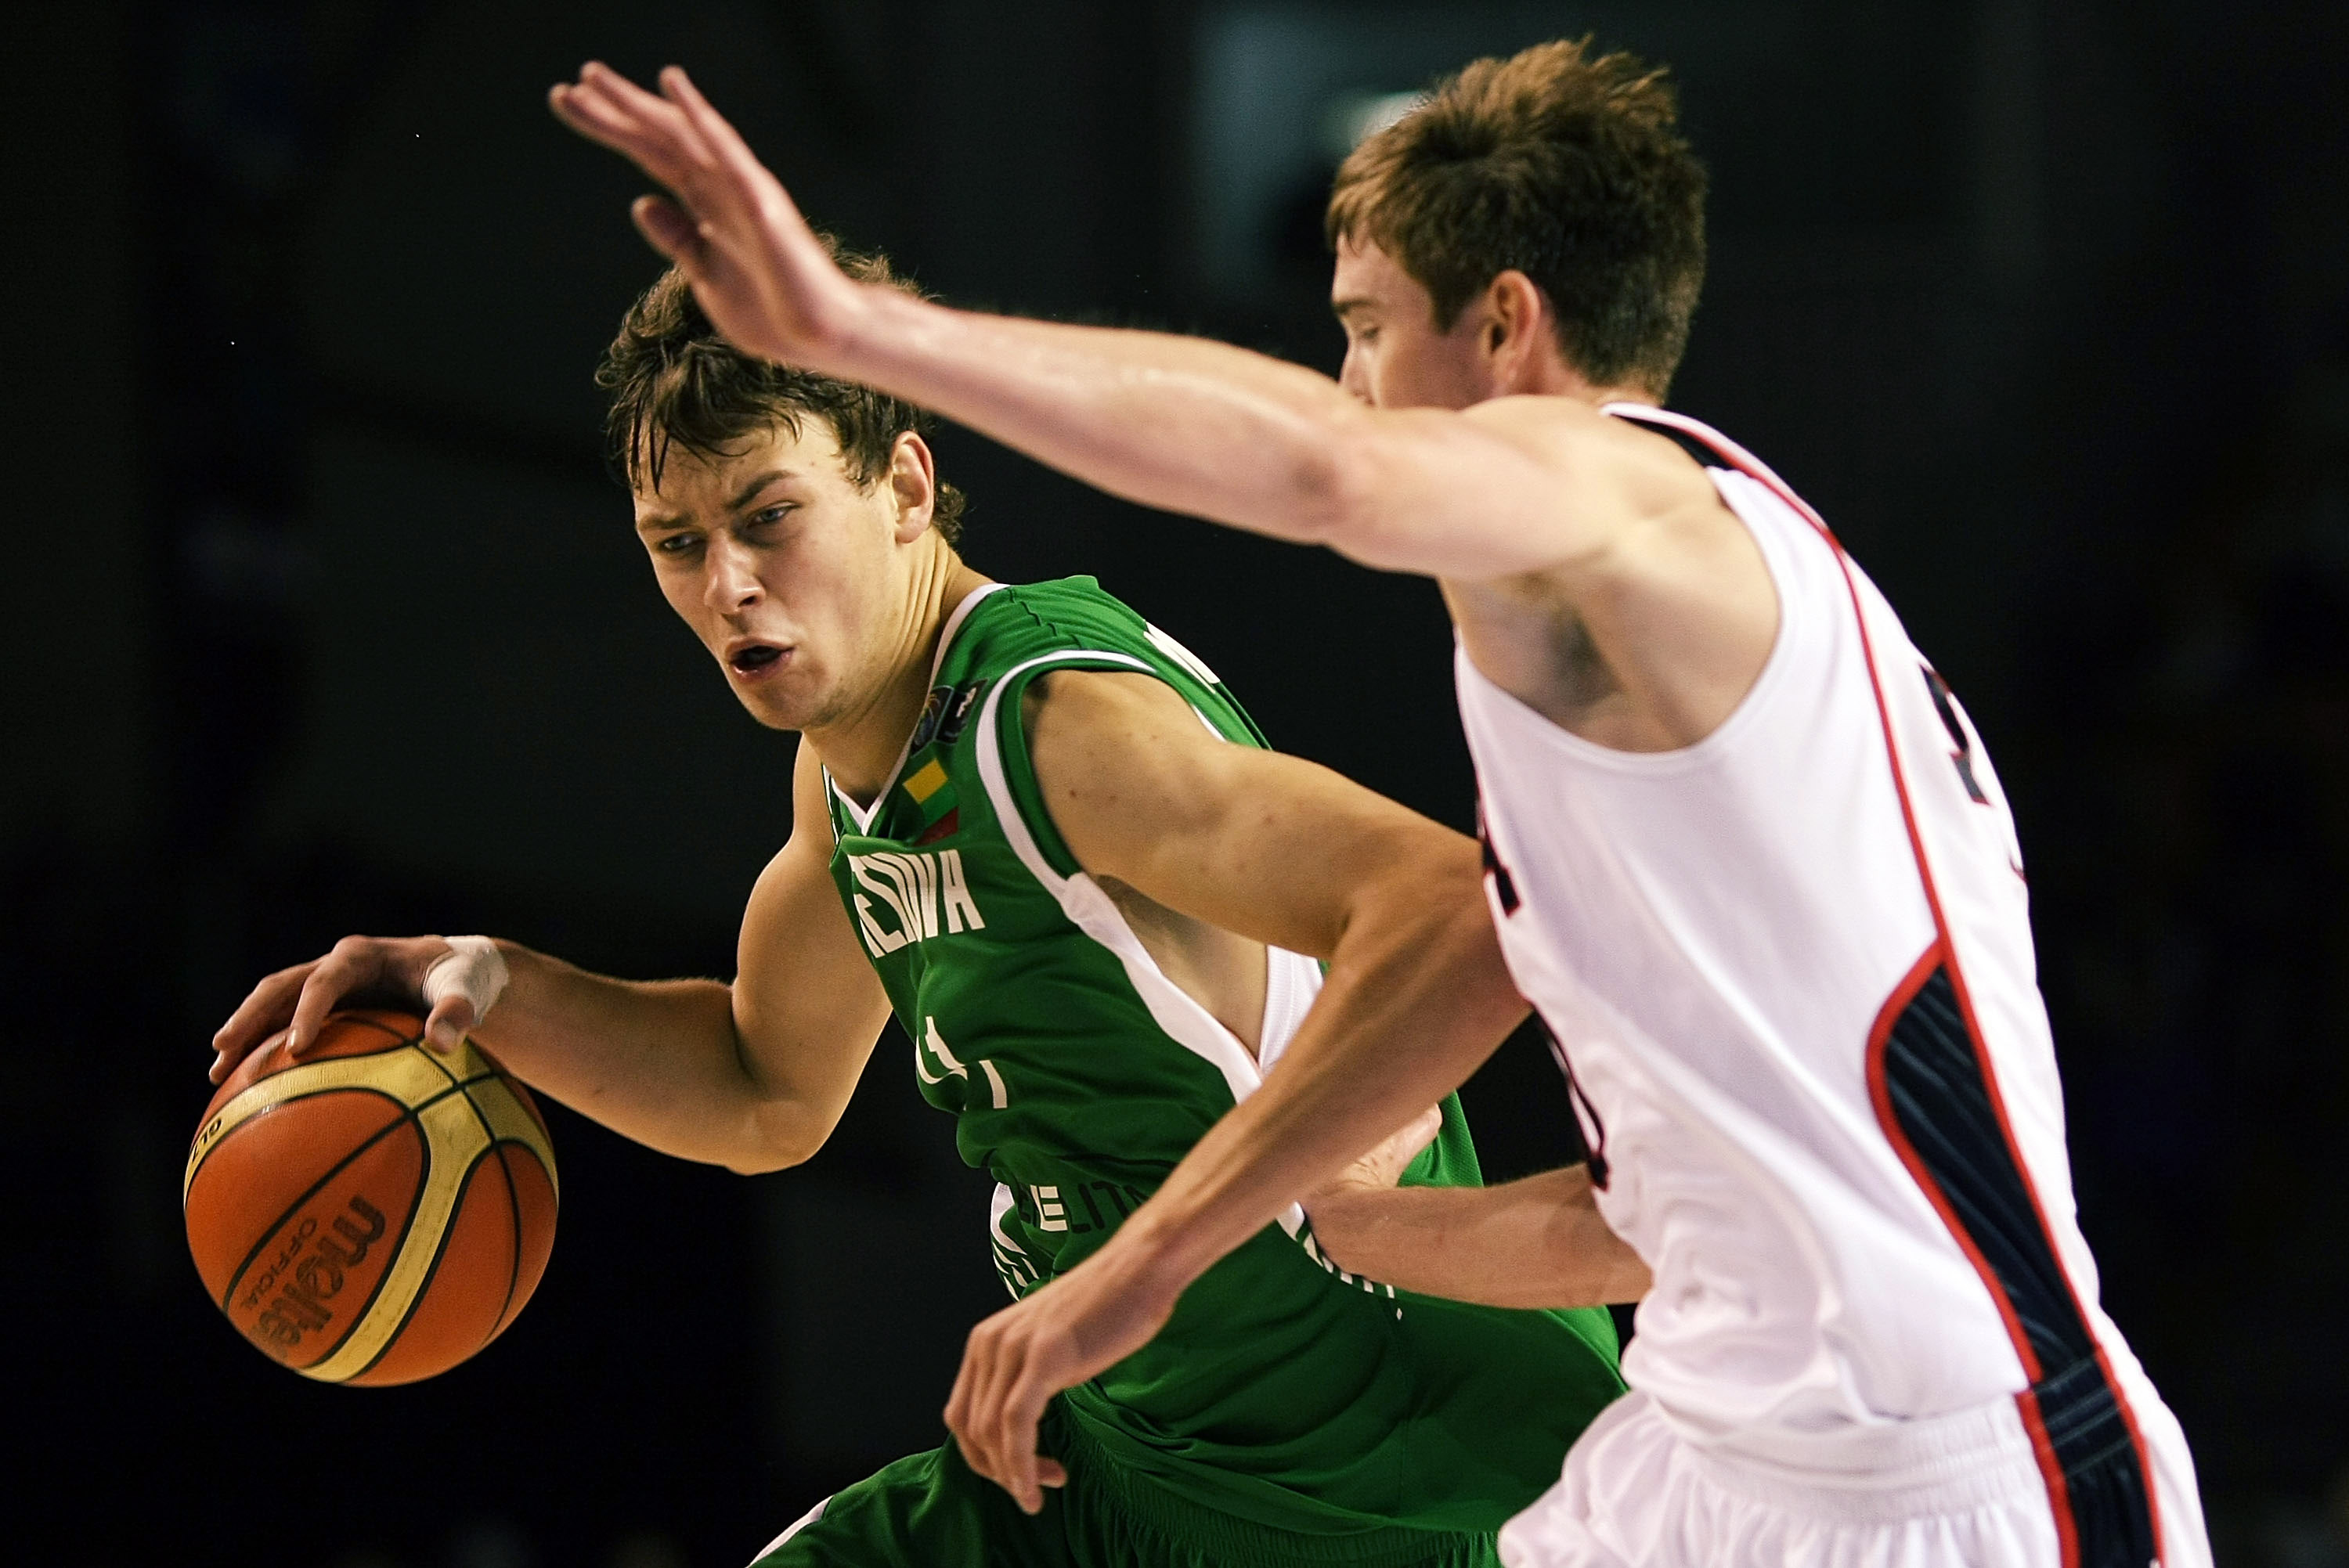 AUCKLAND, NEW ZEALAND - JULY 08:  Donatas Motiejunas of Lithuania tries to get past Gordon Hayward of the United States defends during the U19 Basketball World Championships match between the United States and Lithuania at North Shore Events Centre on Jul